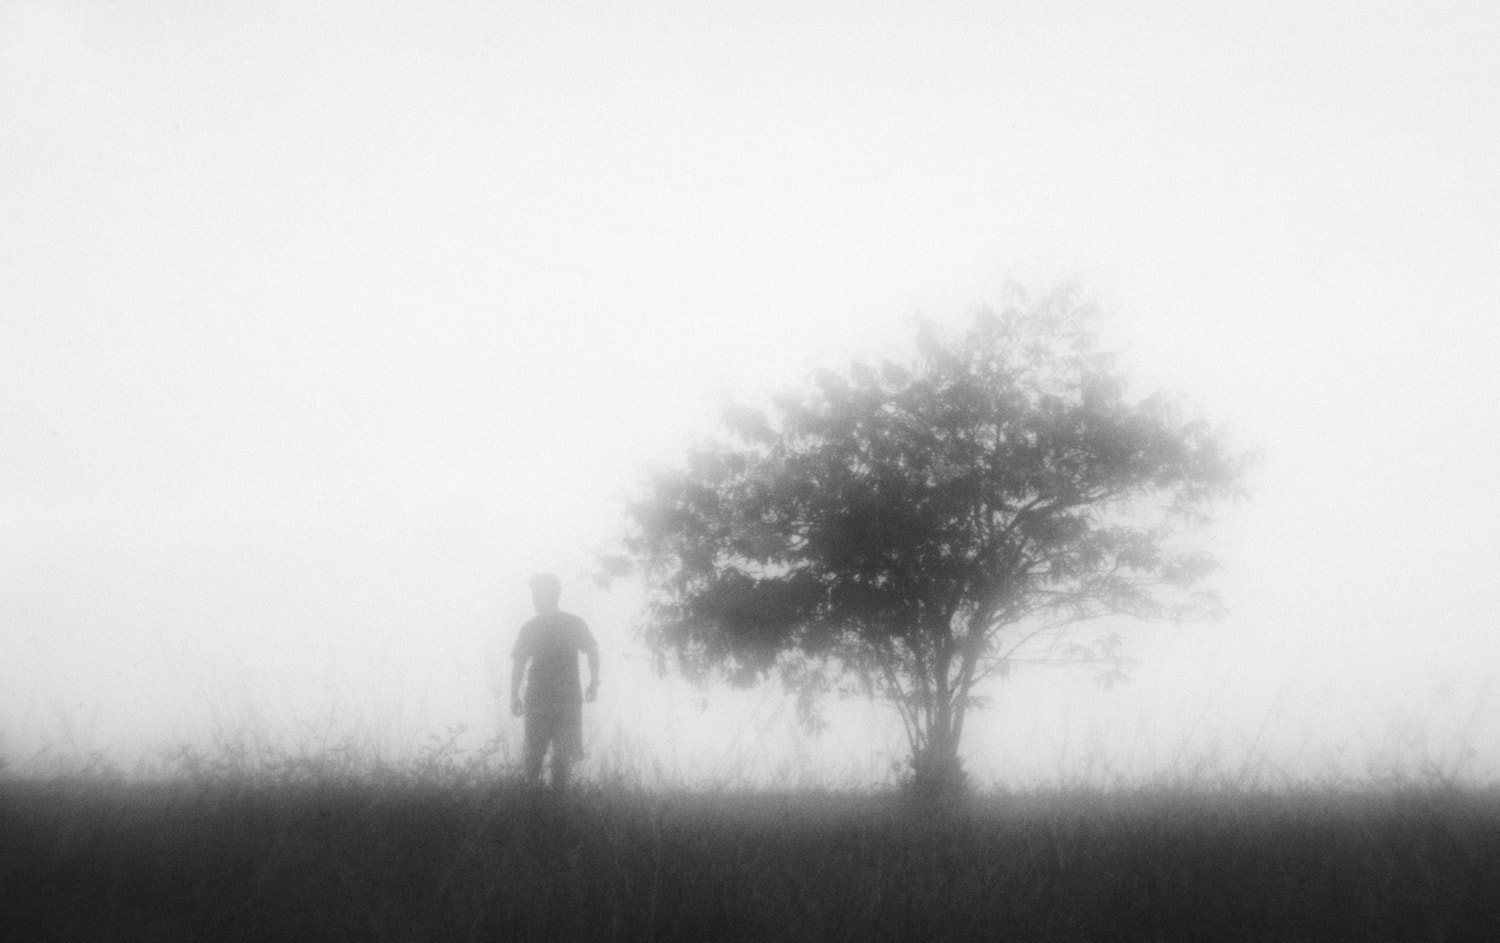 Photograph A New Beginning by Hengki Lee on 500px